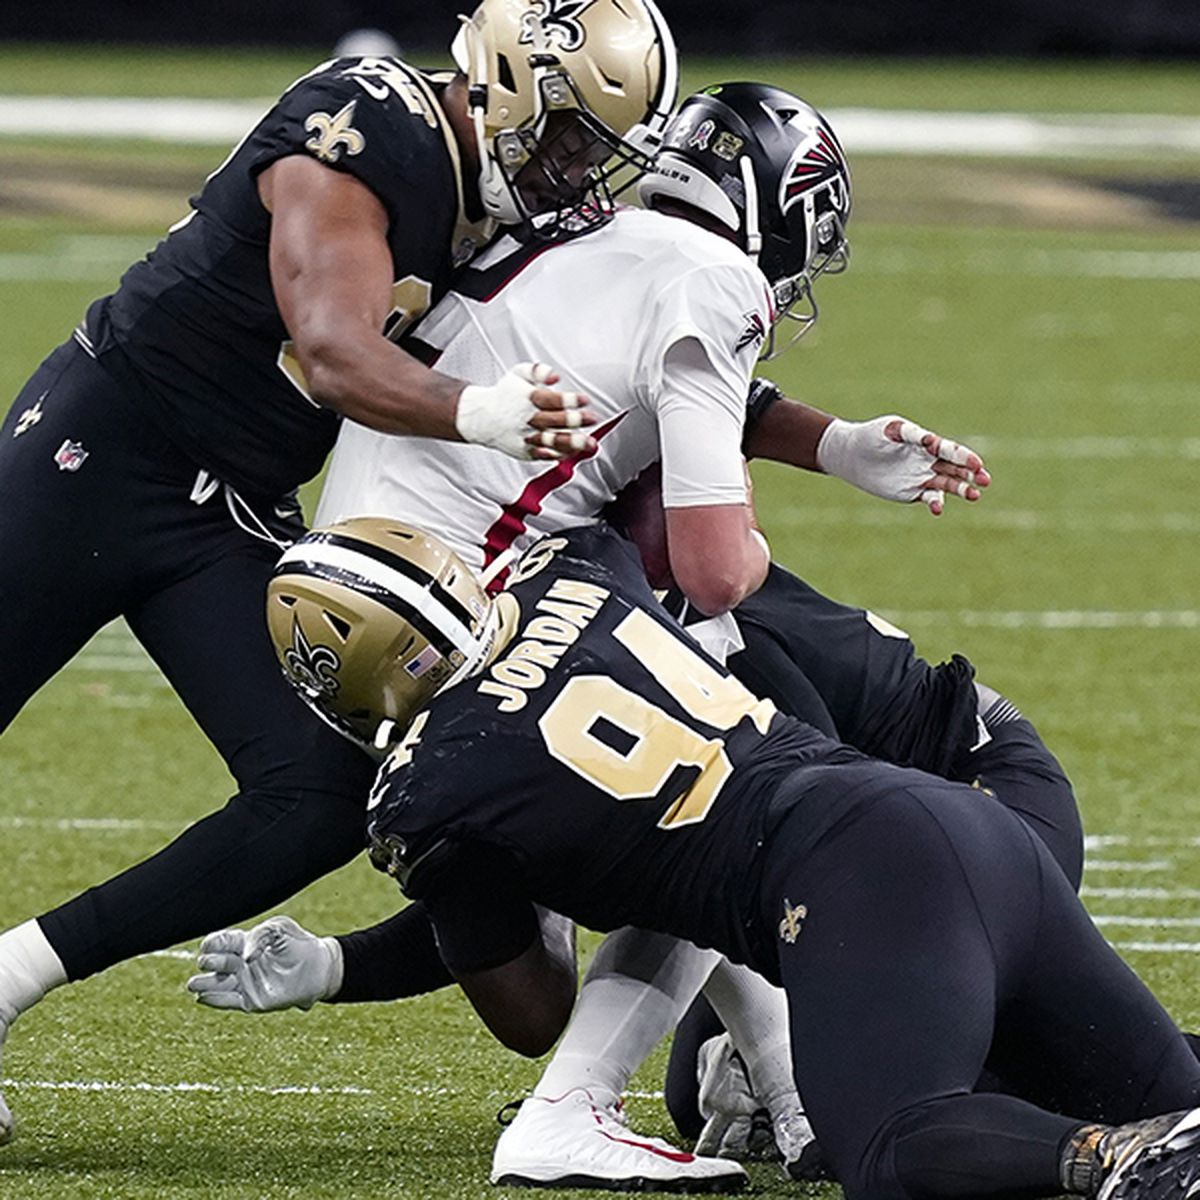 Saints defense stifles the Falcons to the tune of 8 sacks and 2 INT's